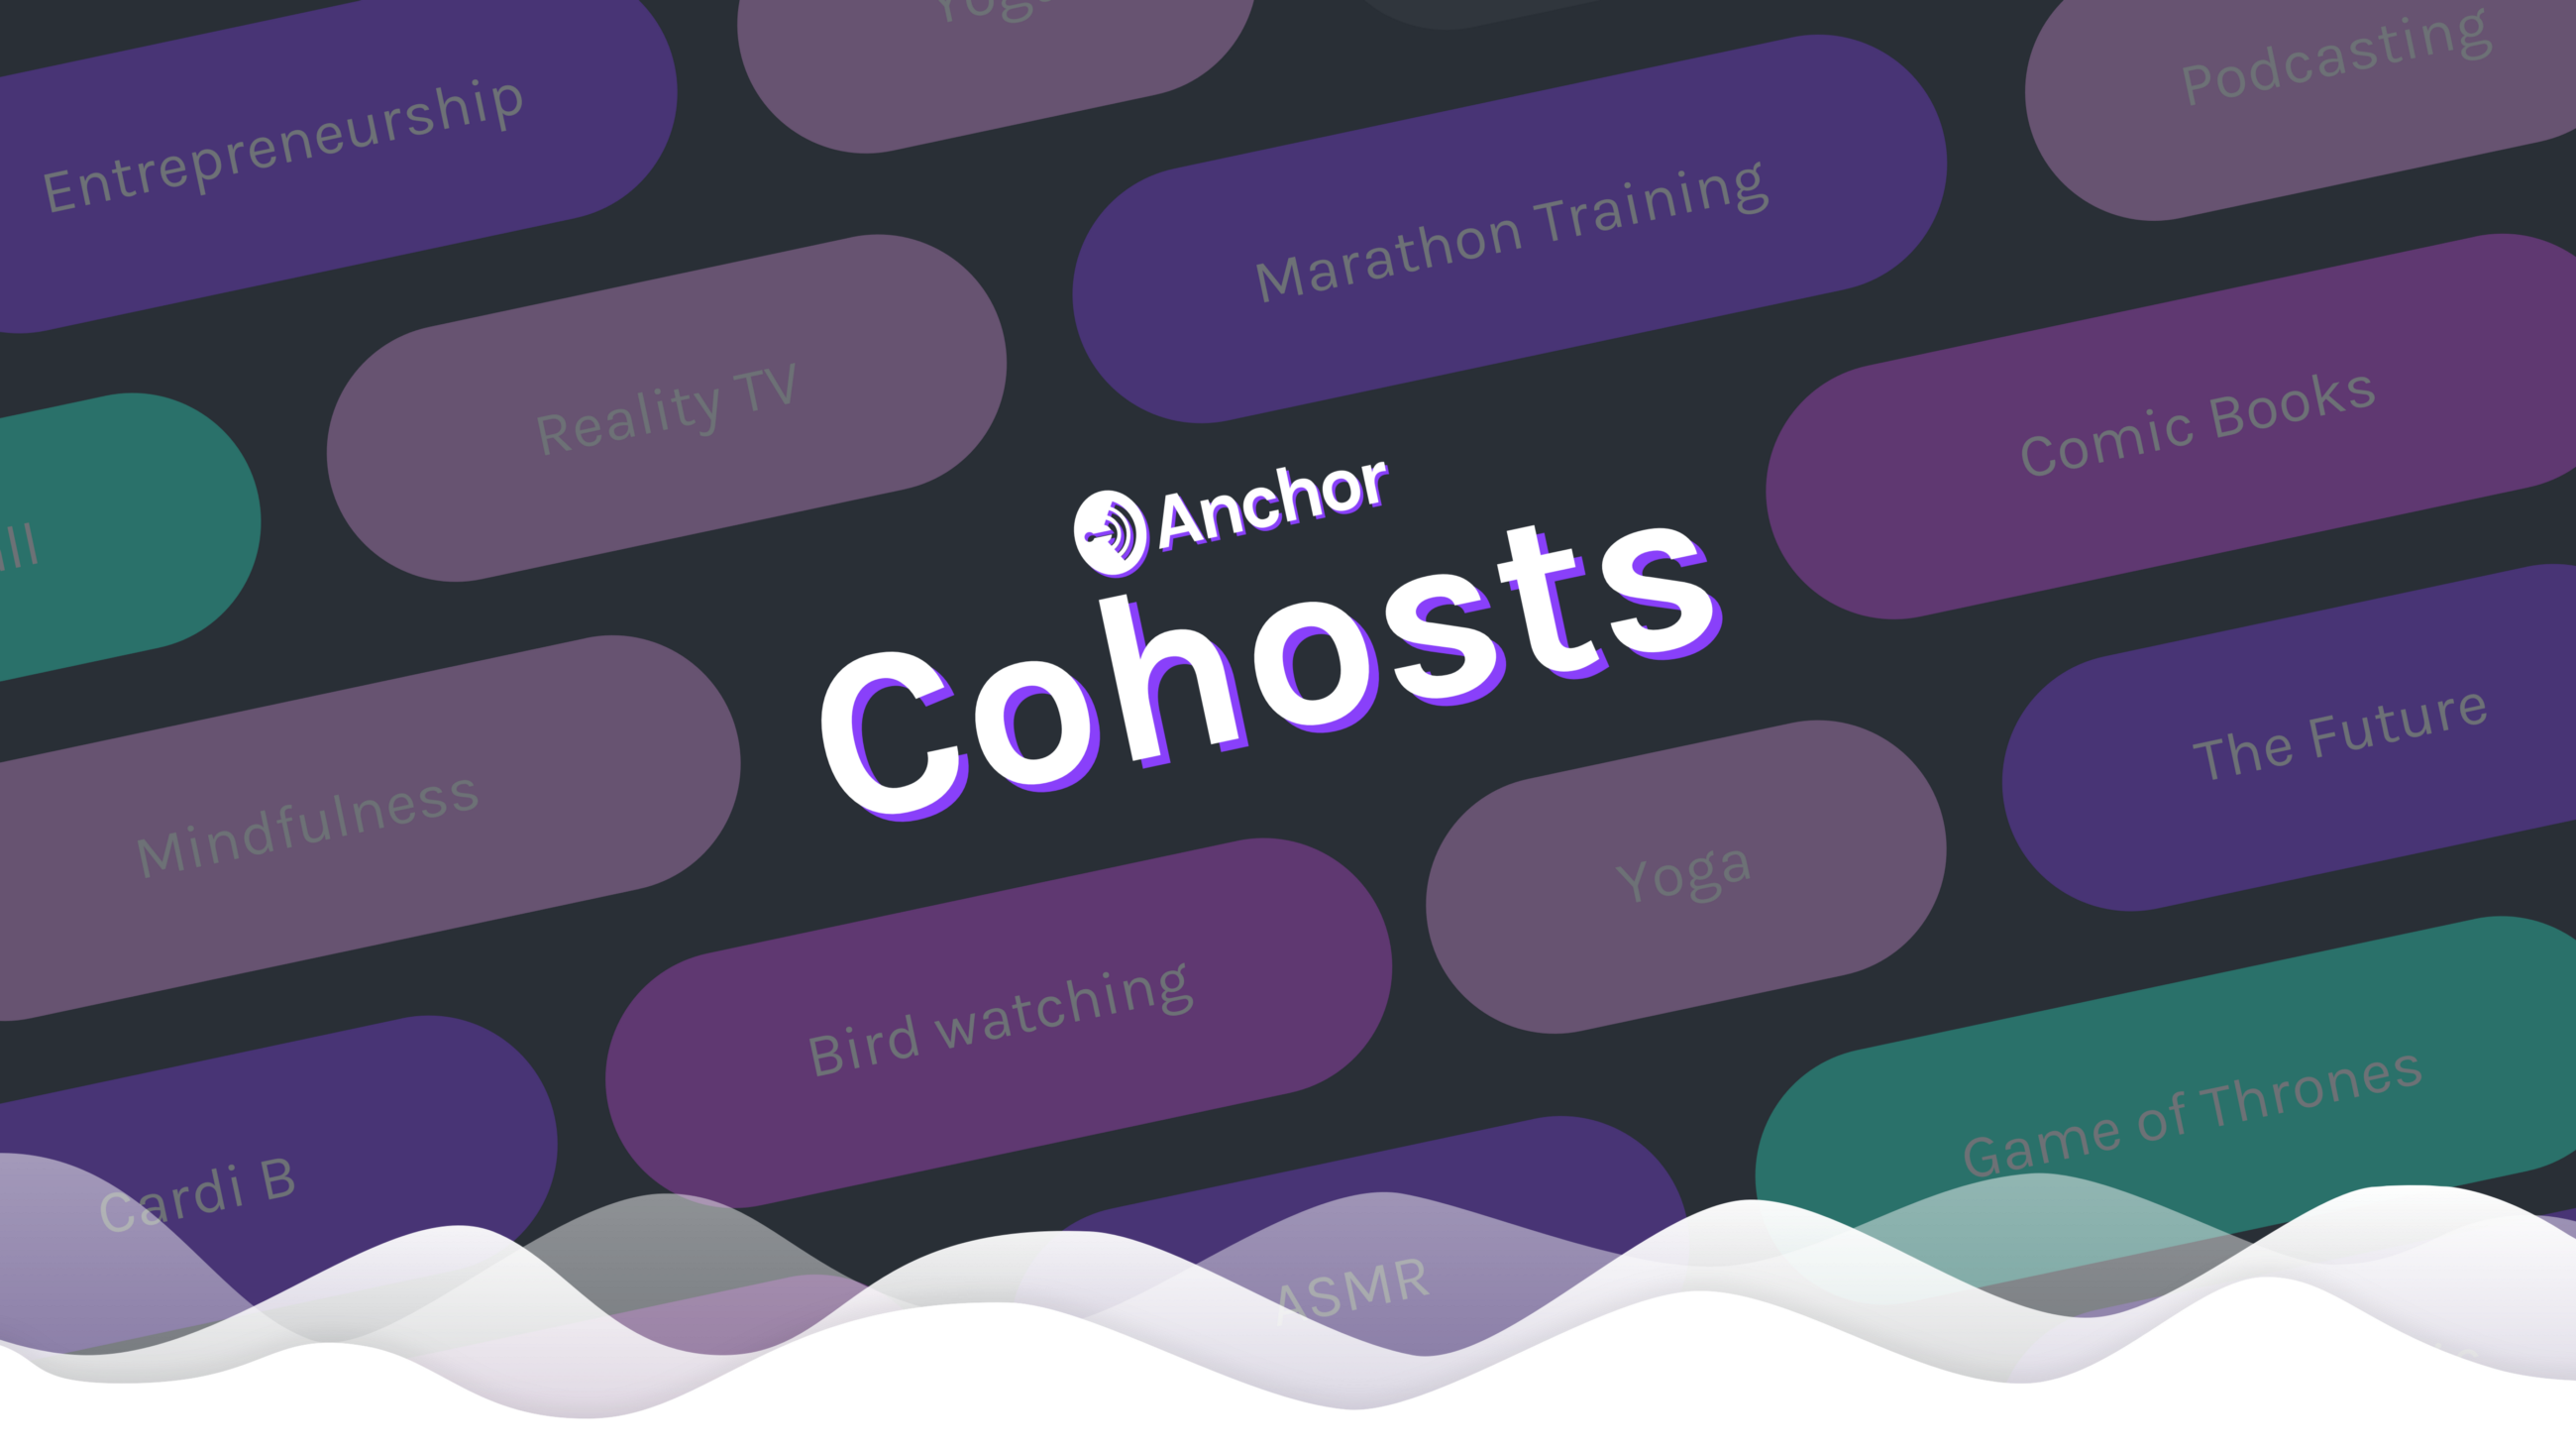 Introducing Anchor Cohosts: the easiest way to find someone to record your podcast with